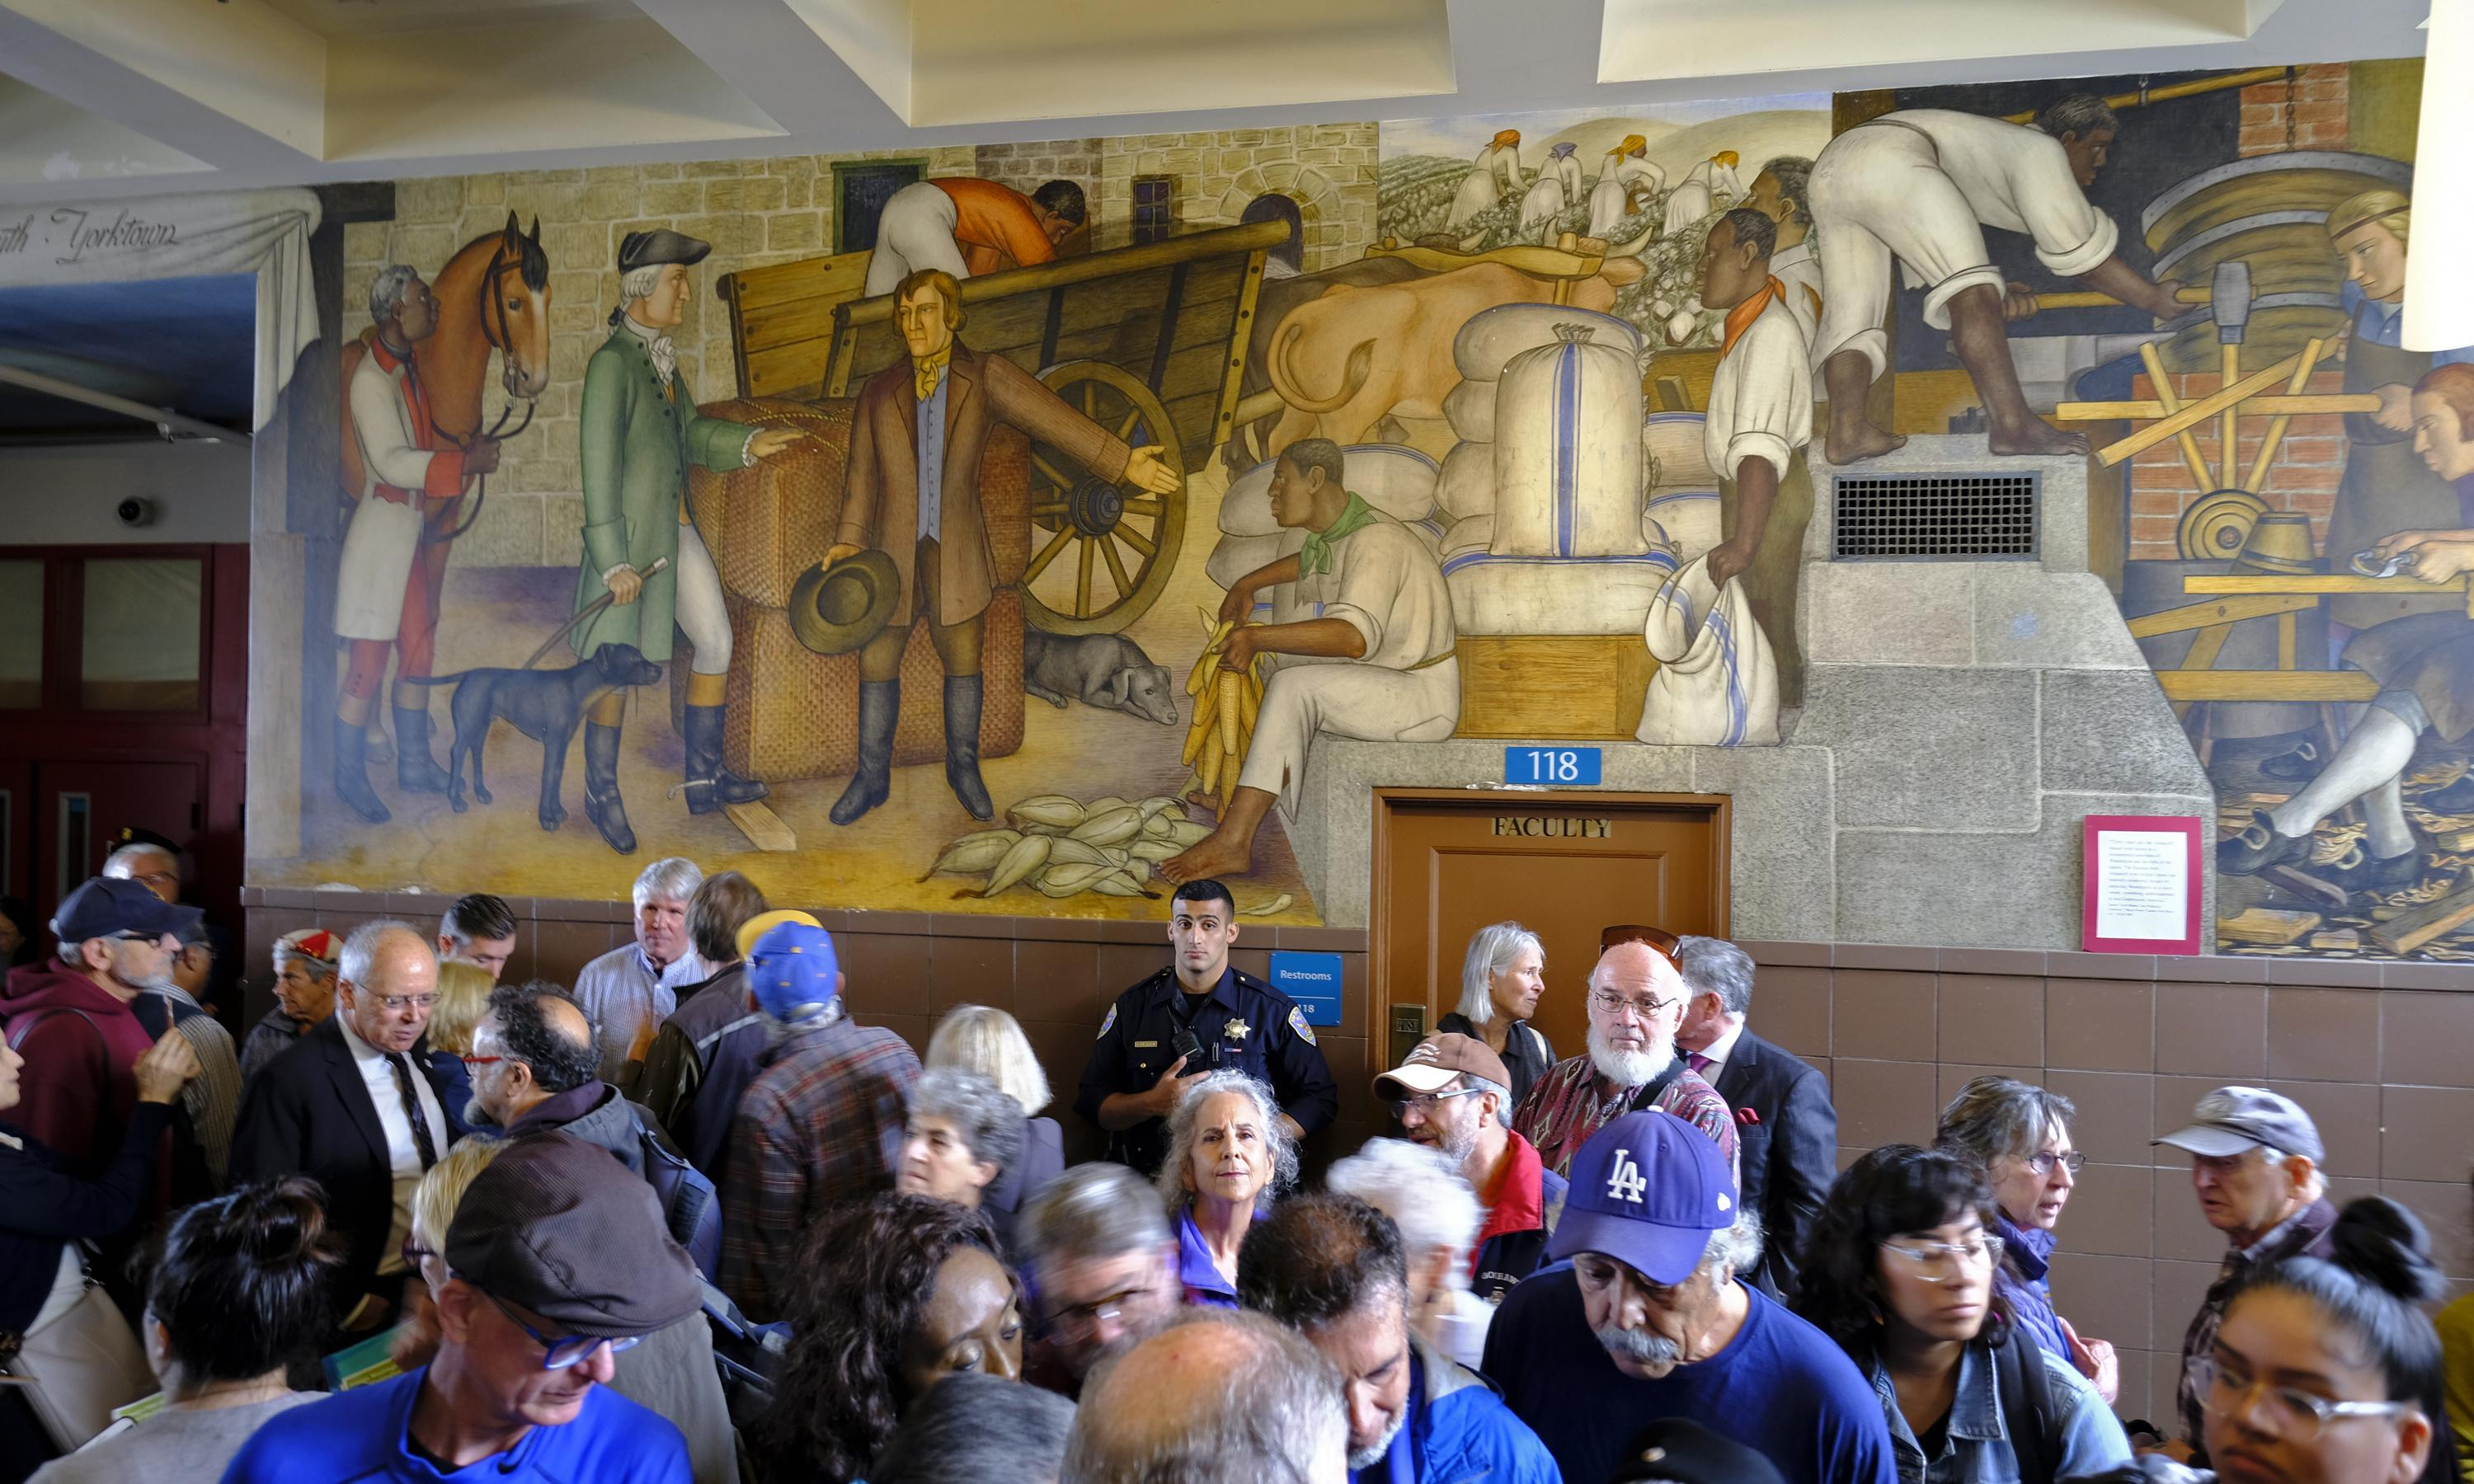 San Francisco school board reverses plan to paint over mural showing slaves and violence